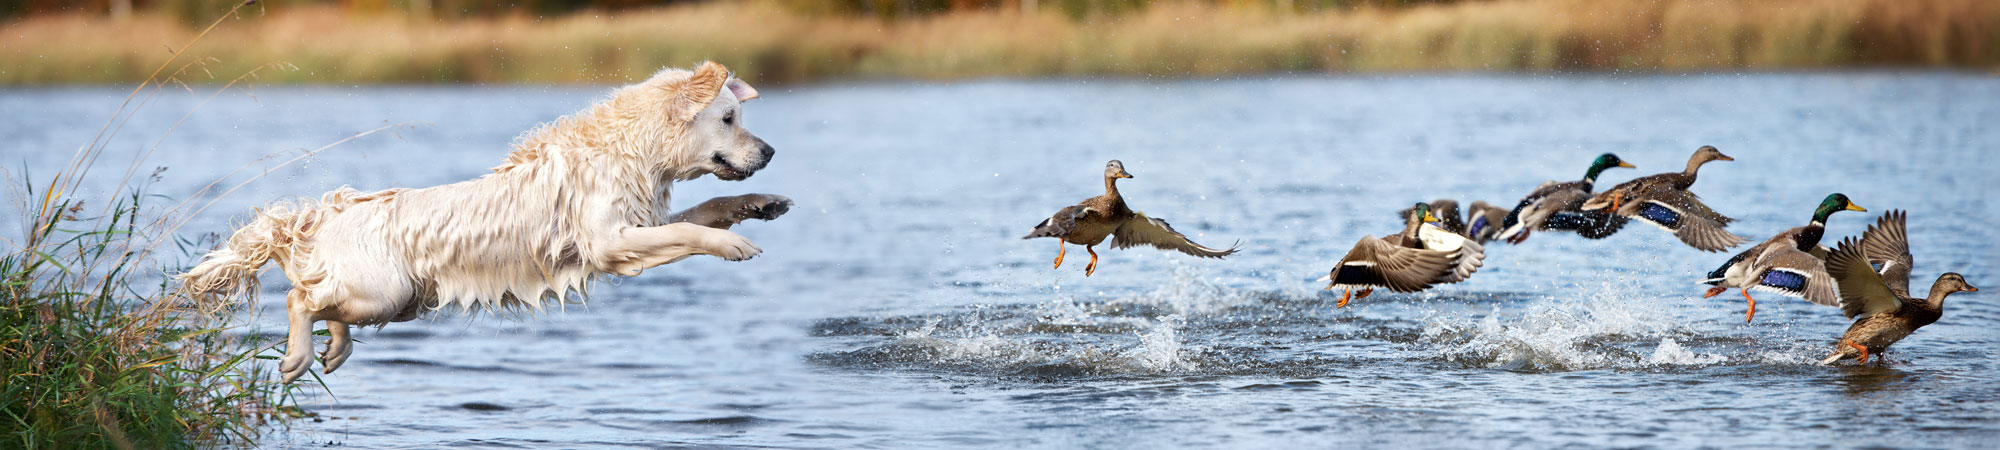 Working dog chasing ducks